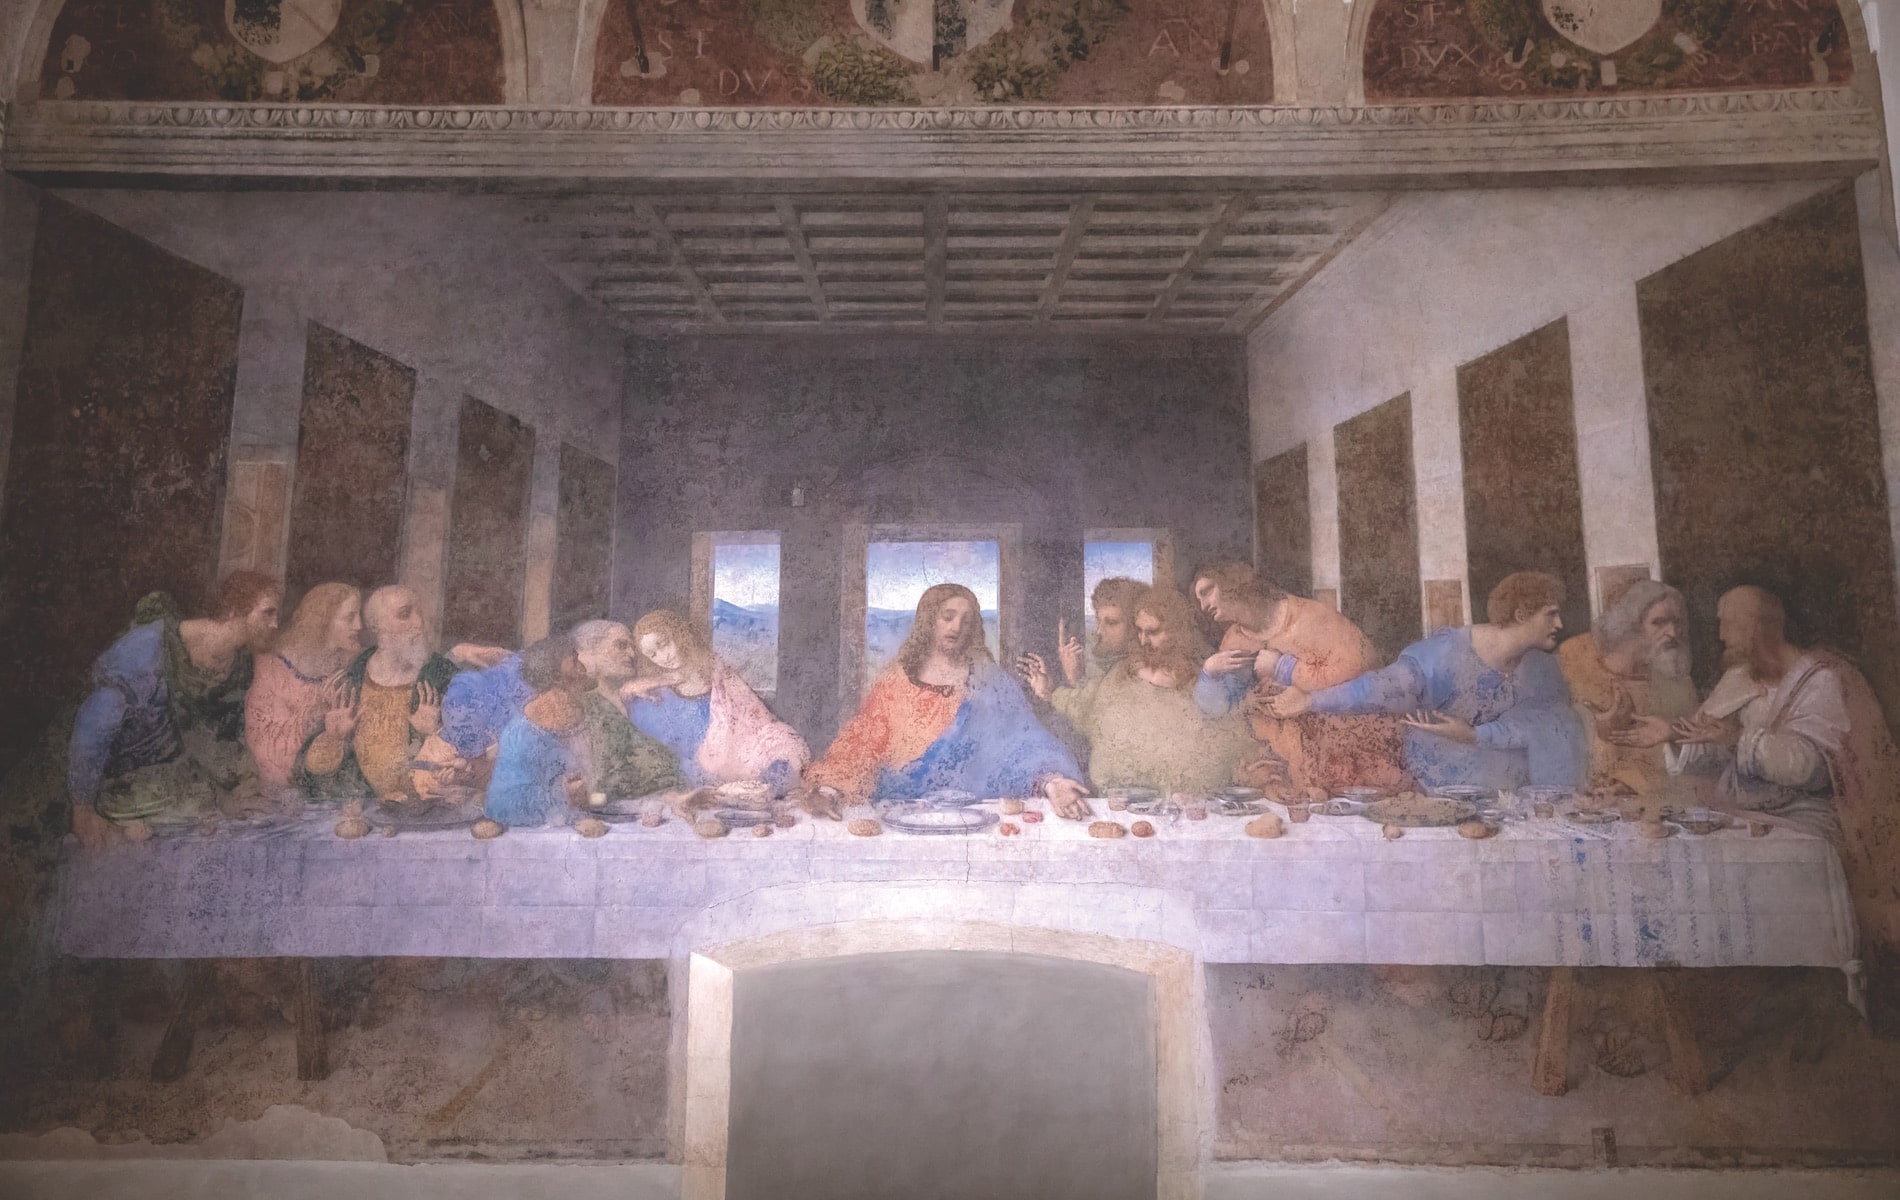 Interior of the refectory at Santa Maria delle Grazie (Holy Mary of Grace) in Milan featuring the mural of The Last Supper by Leonardo da Vinci